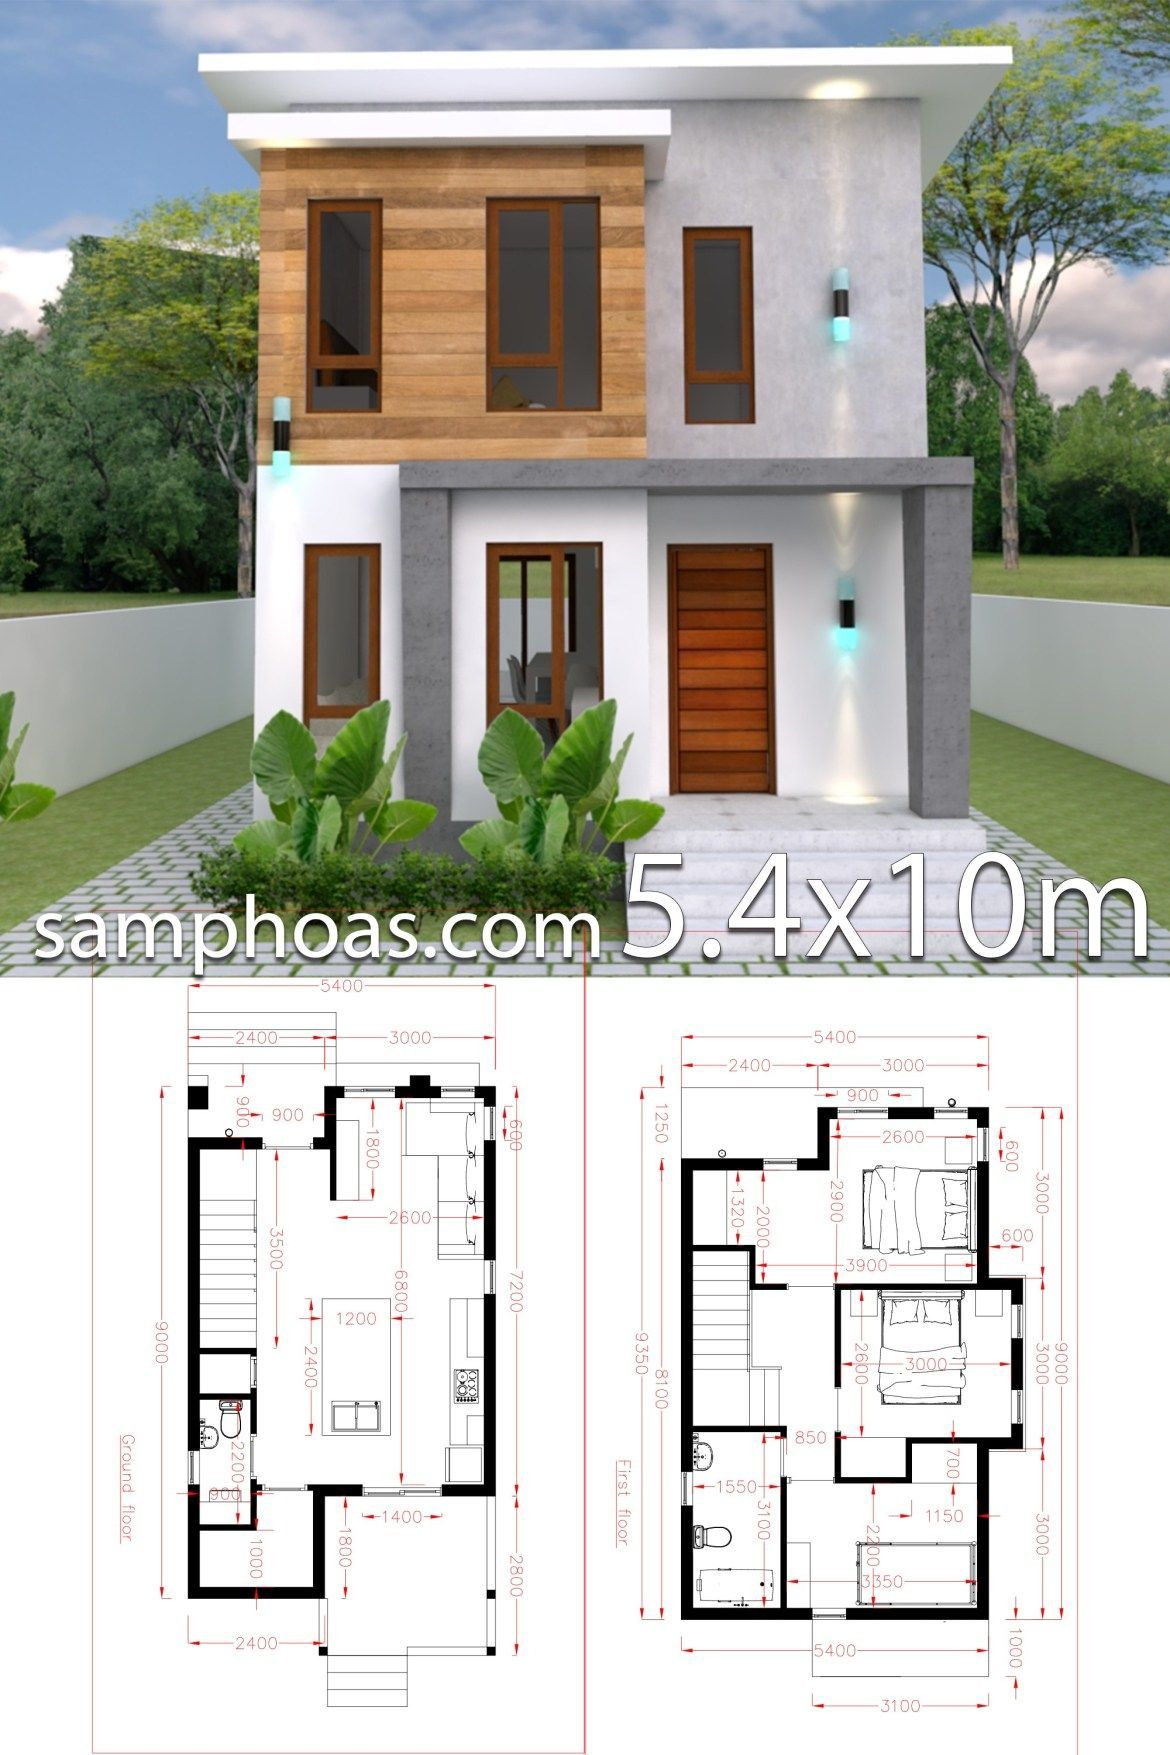 Small Home Design Plan 5 4x10m With 3 Bedroom Imagens In 2021 Small House Design Plans Model House Plan Simple House Design